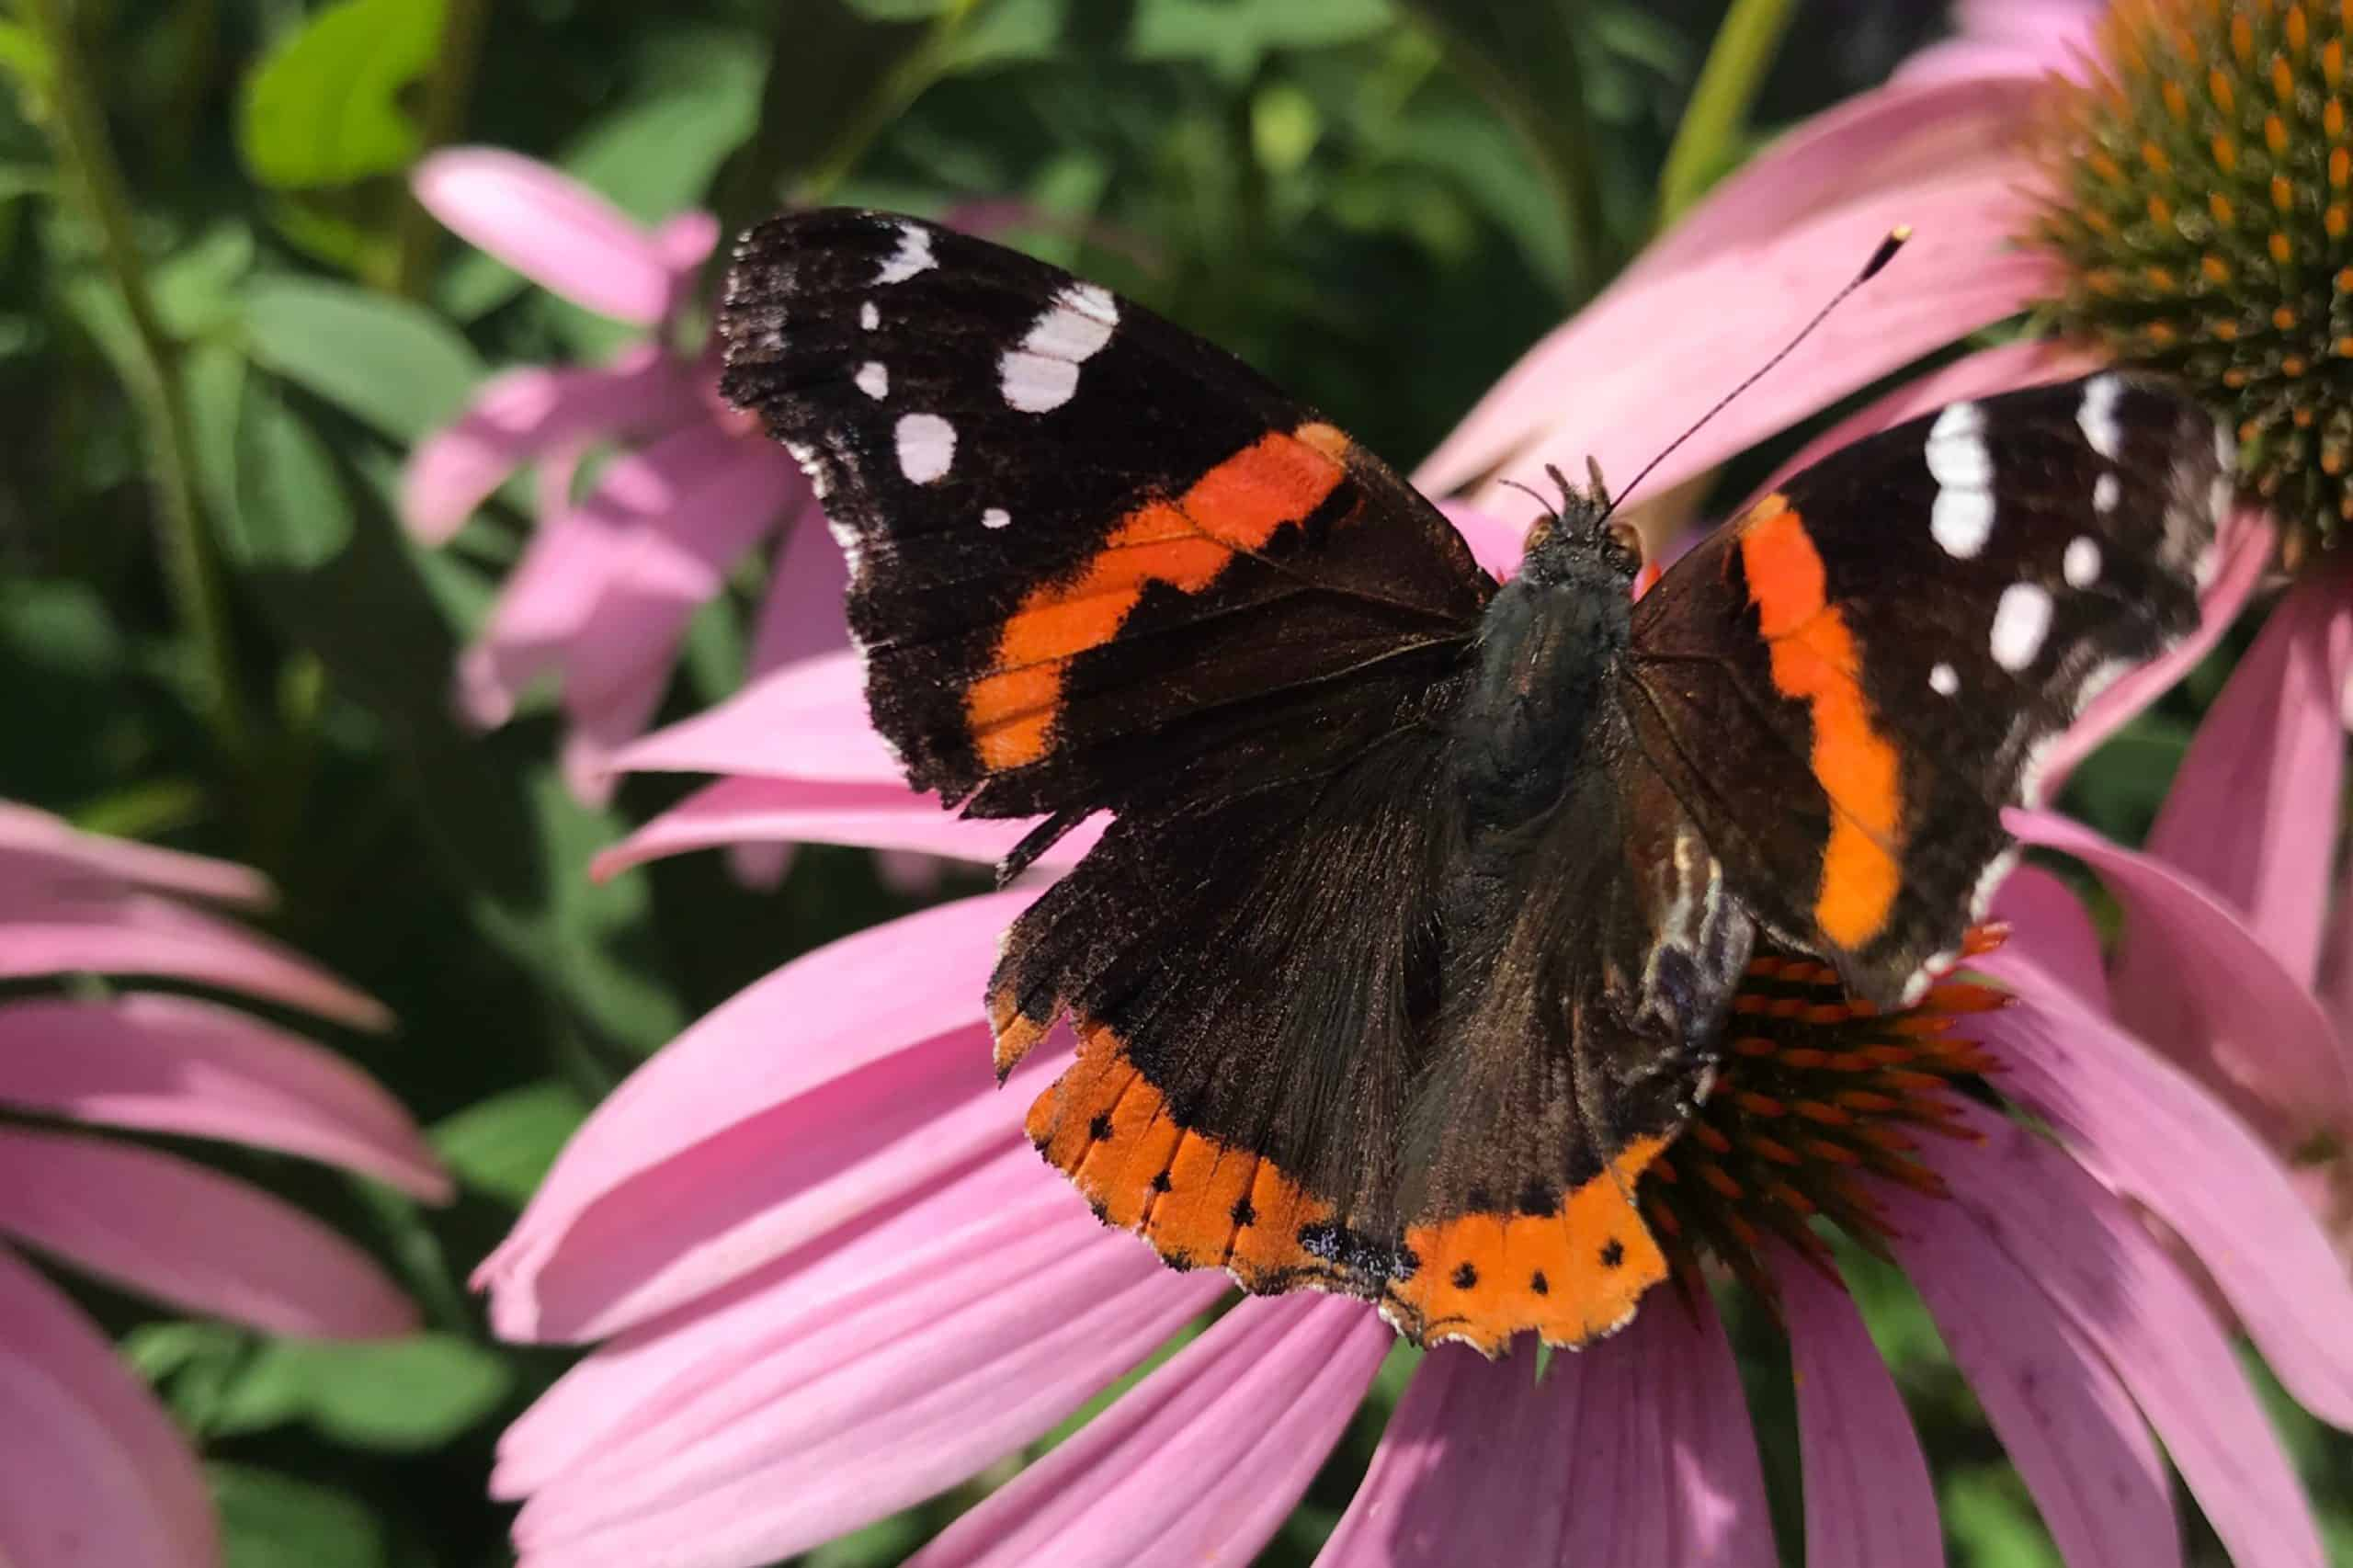 a butterfly resting on a pink coneflower